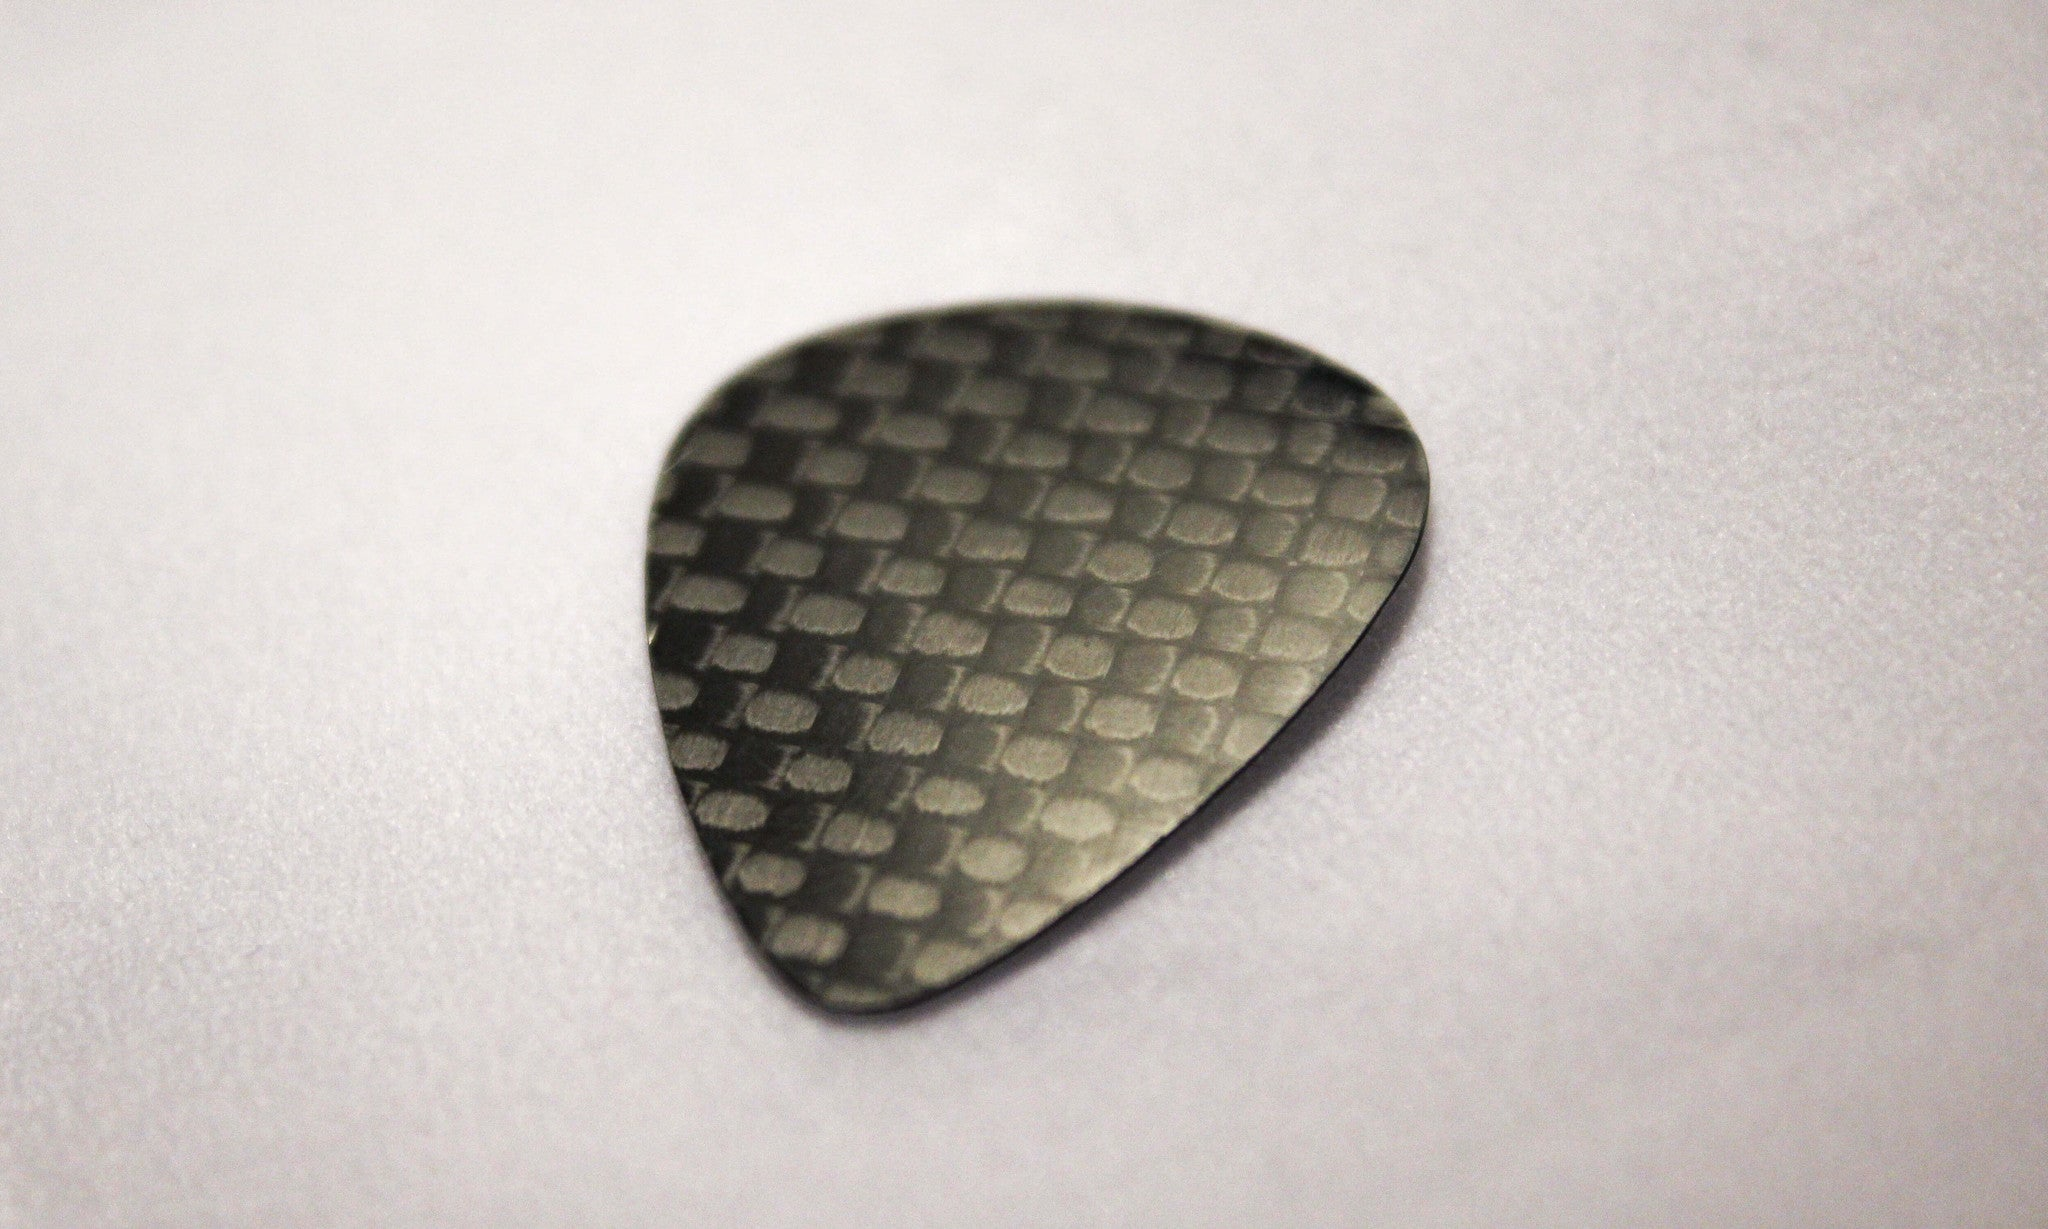 Carbon Fiber Guitar Pick 0.2 mm